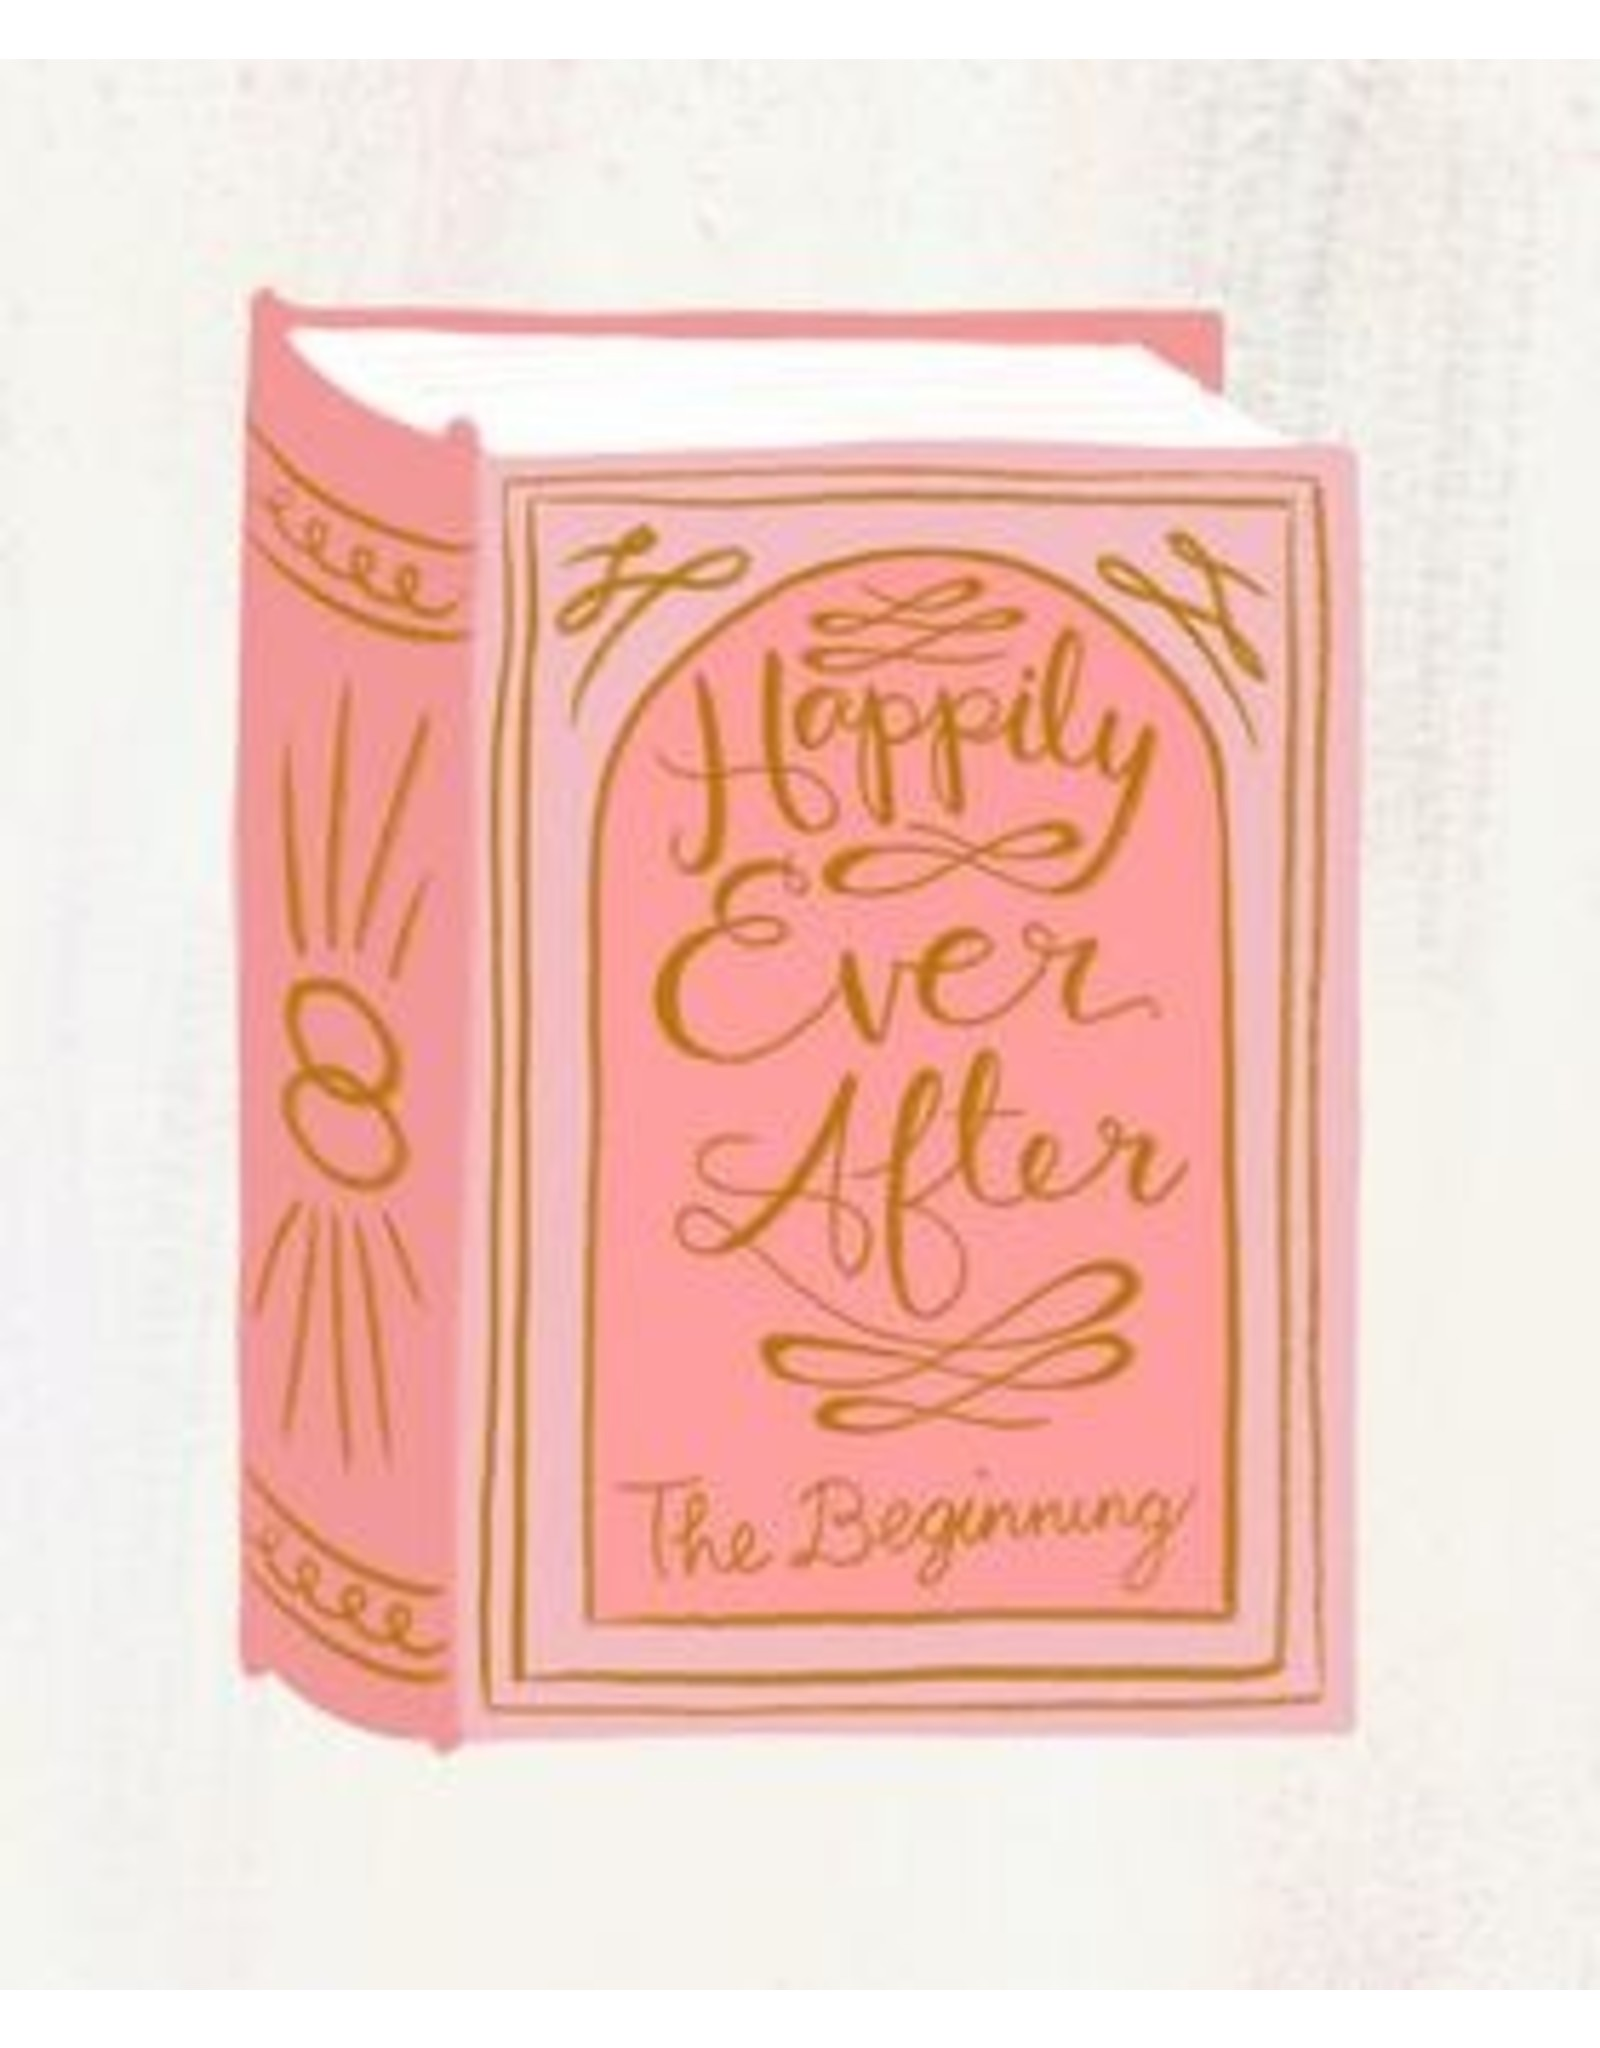 Meaghan Smith - Happily Ever After (The Beginning) Card